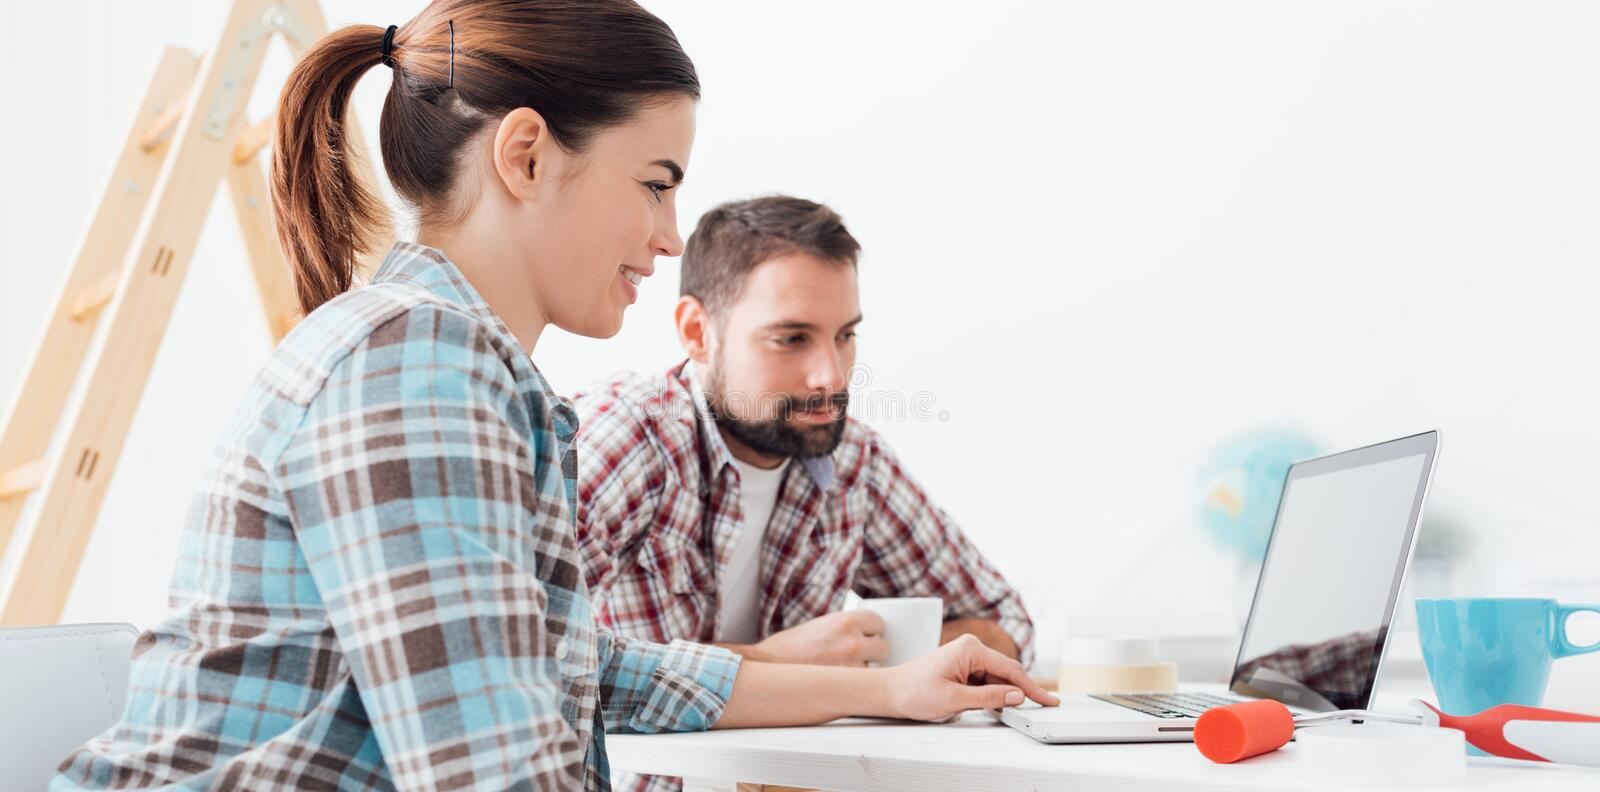 Couple renovating their home royalty free stock image